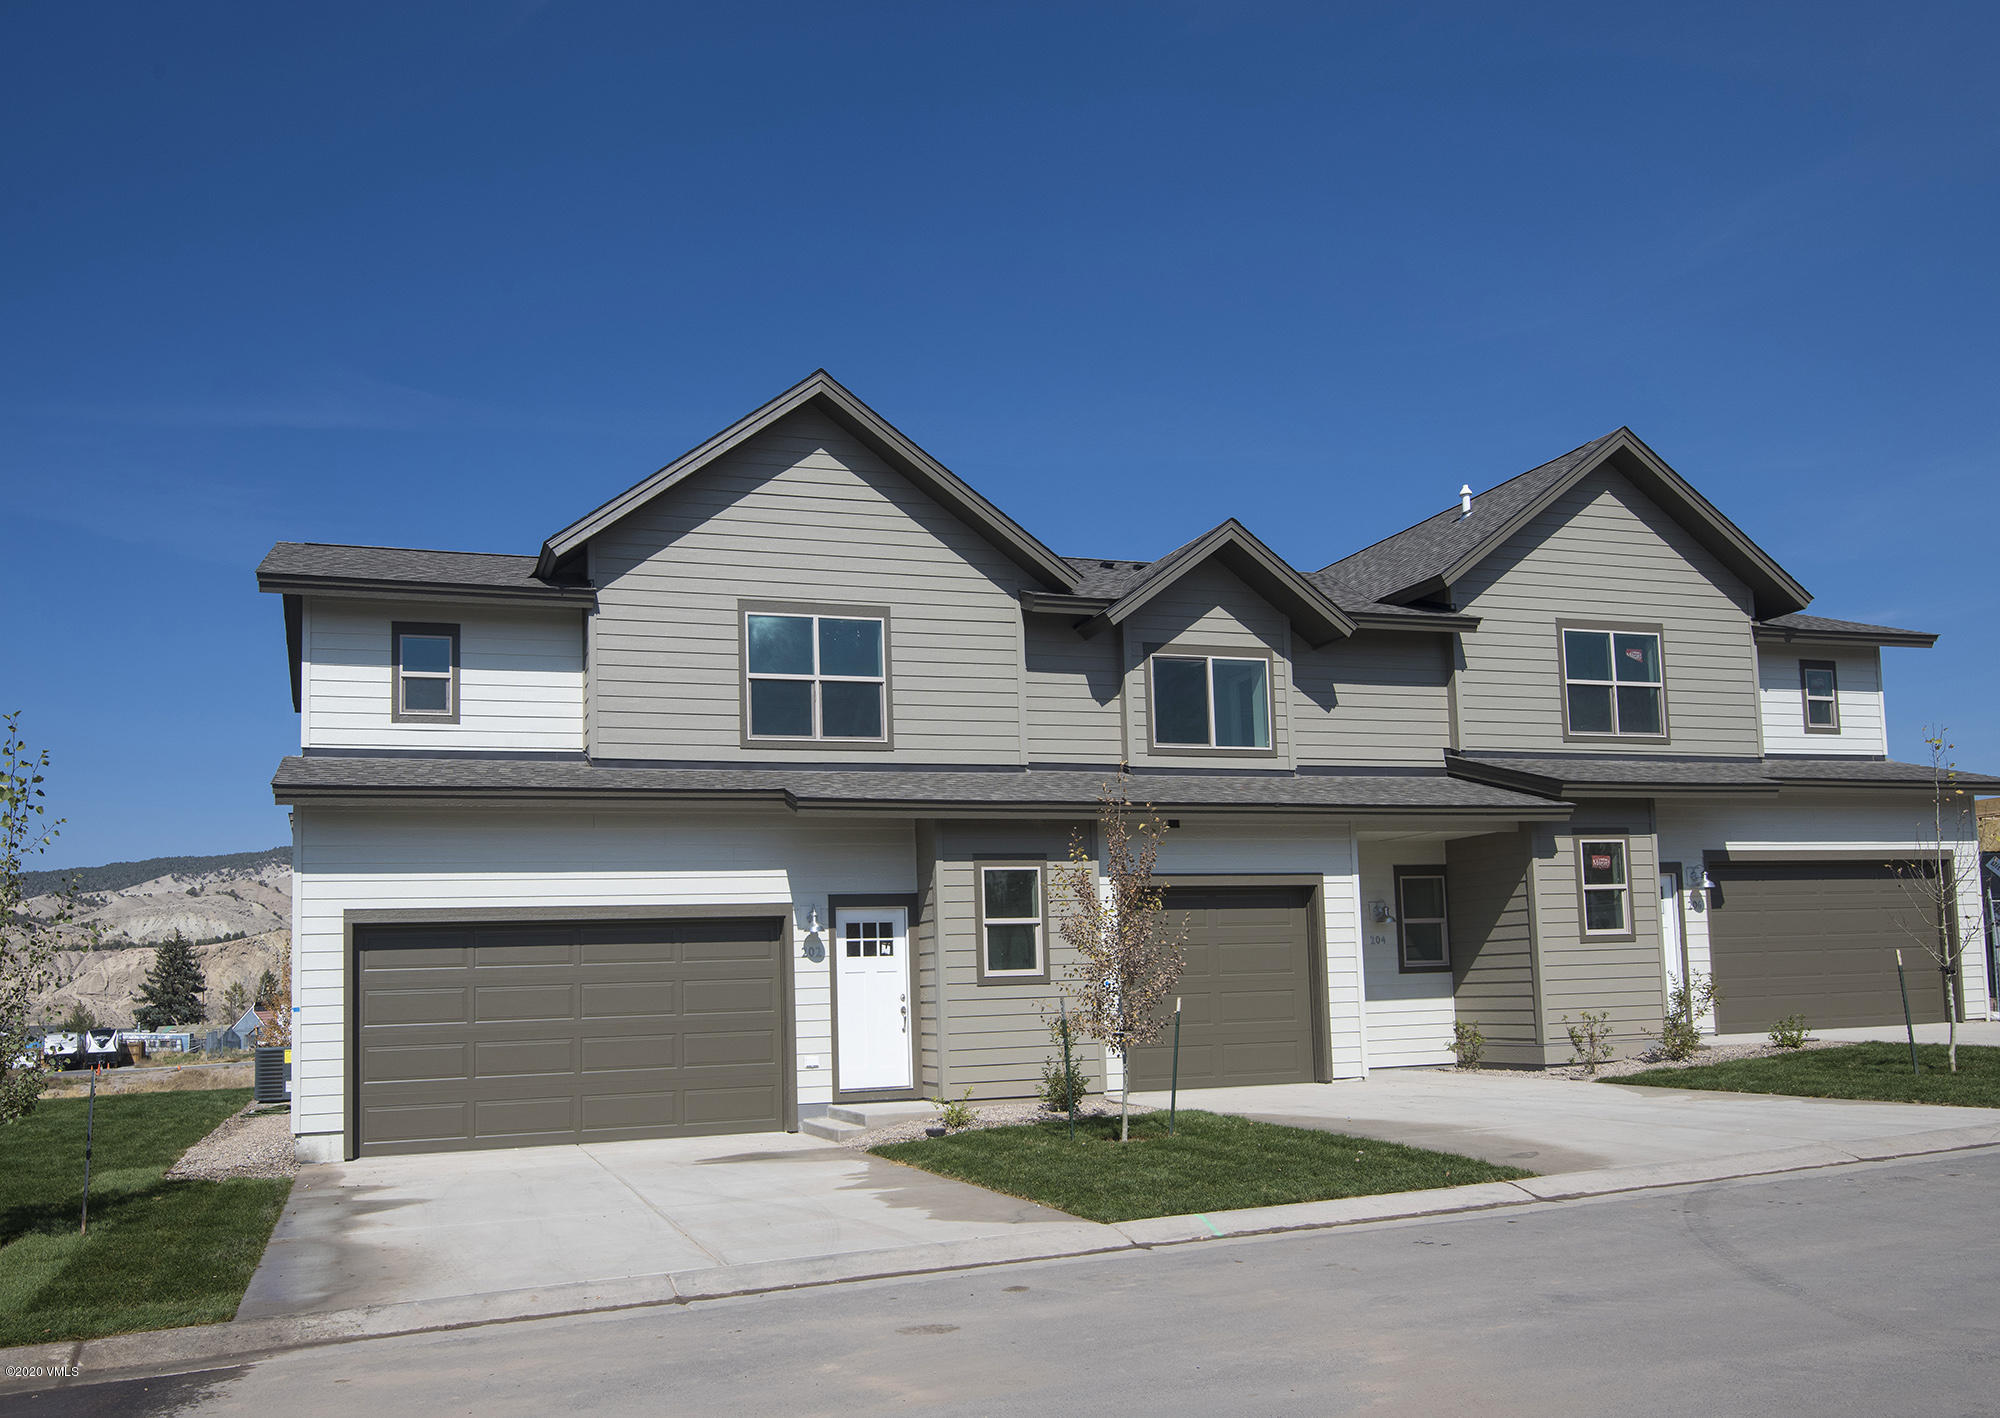 BRAND NEW TOWNHOME! Now Under Construction! Well-designed, site-built, 3 bedroom, 2.5 bath home with an attached 2-car garage. Incredibly convenient location close to Costco, Gypsum Rec Ctr, and Eagle County Airport. Only minutes to world-class recreation of all types. Standard finishes include vaulted ceilings, LVT flooring, quartz countertops, kitchen pantry, & stainless steel Whirlpool appliances. Laundry room conveniently located on the bedroom level.